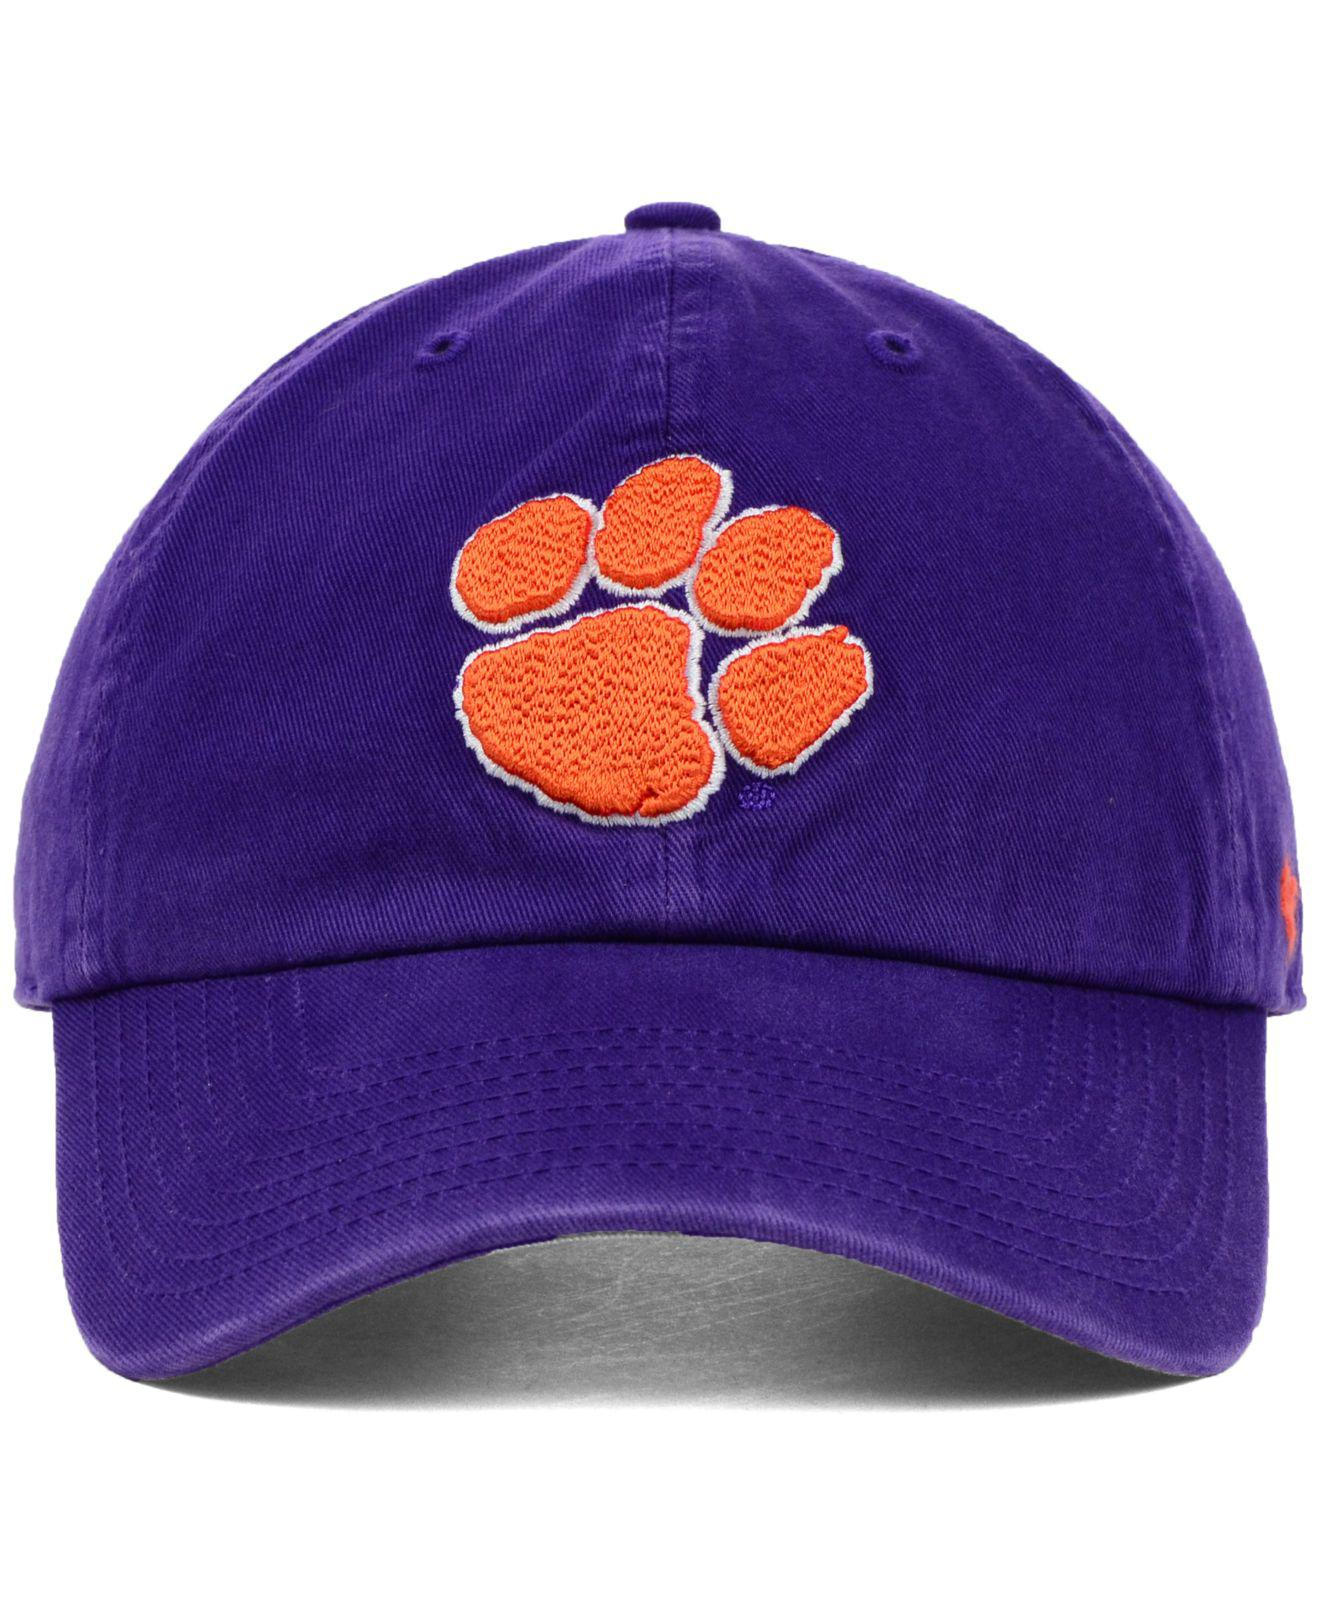 e1cf57e8886f1 ... germany lyst 47 brand clemson tigers ncaa clean up cap in purple for men  a9889 c6ea7 ...